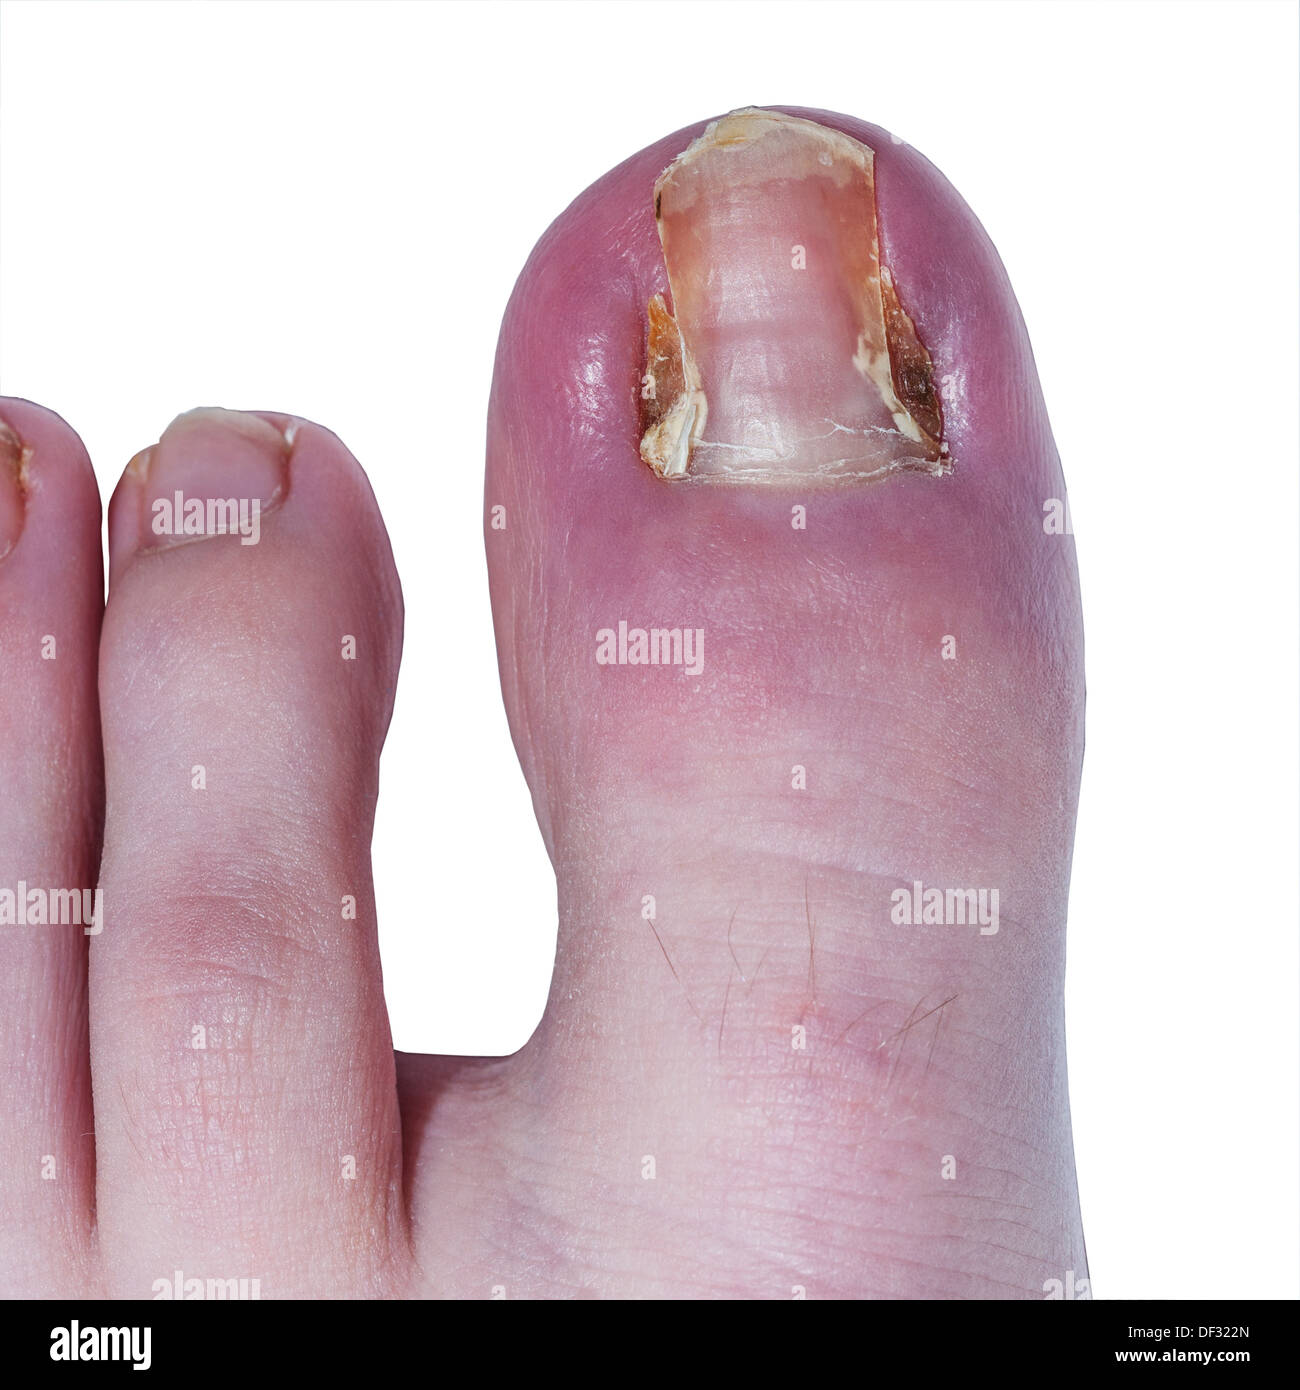 Nail Salons In Brooklyn >> My Toenail Is Cutting Into My Skin - Nail Ftempo